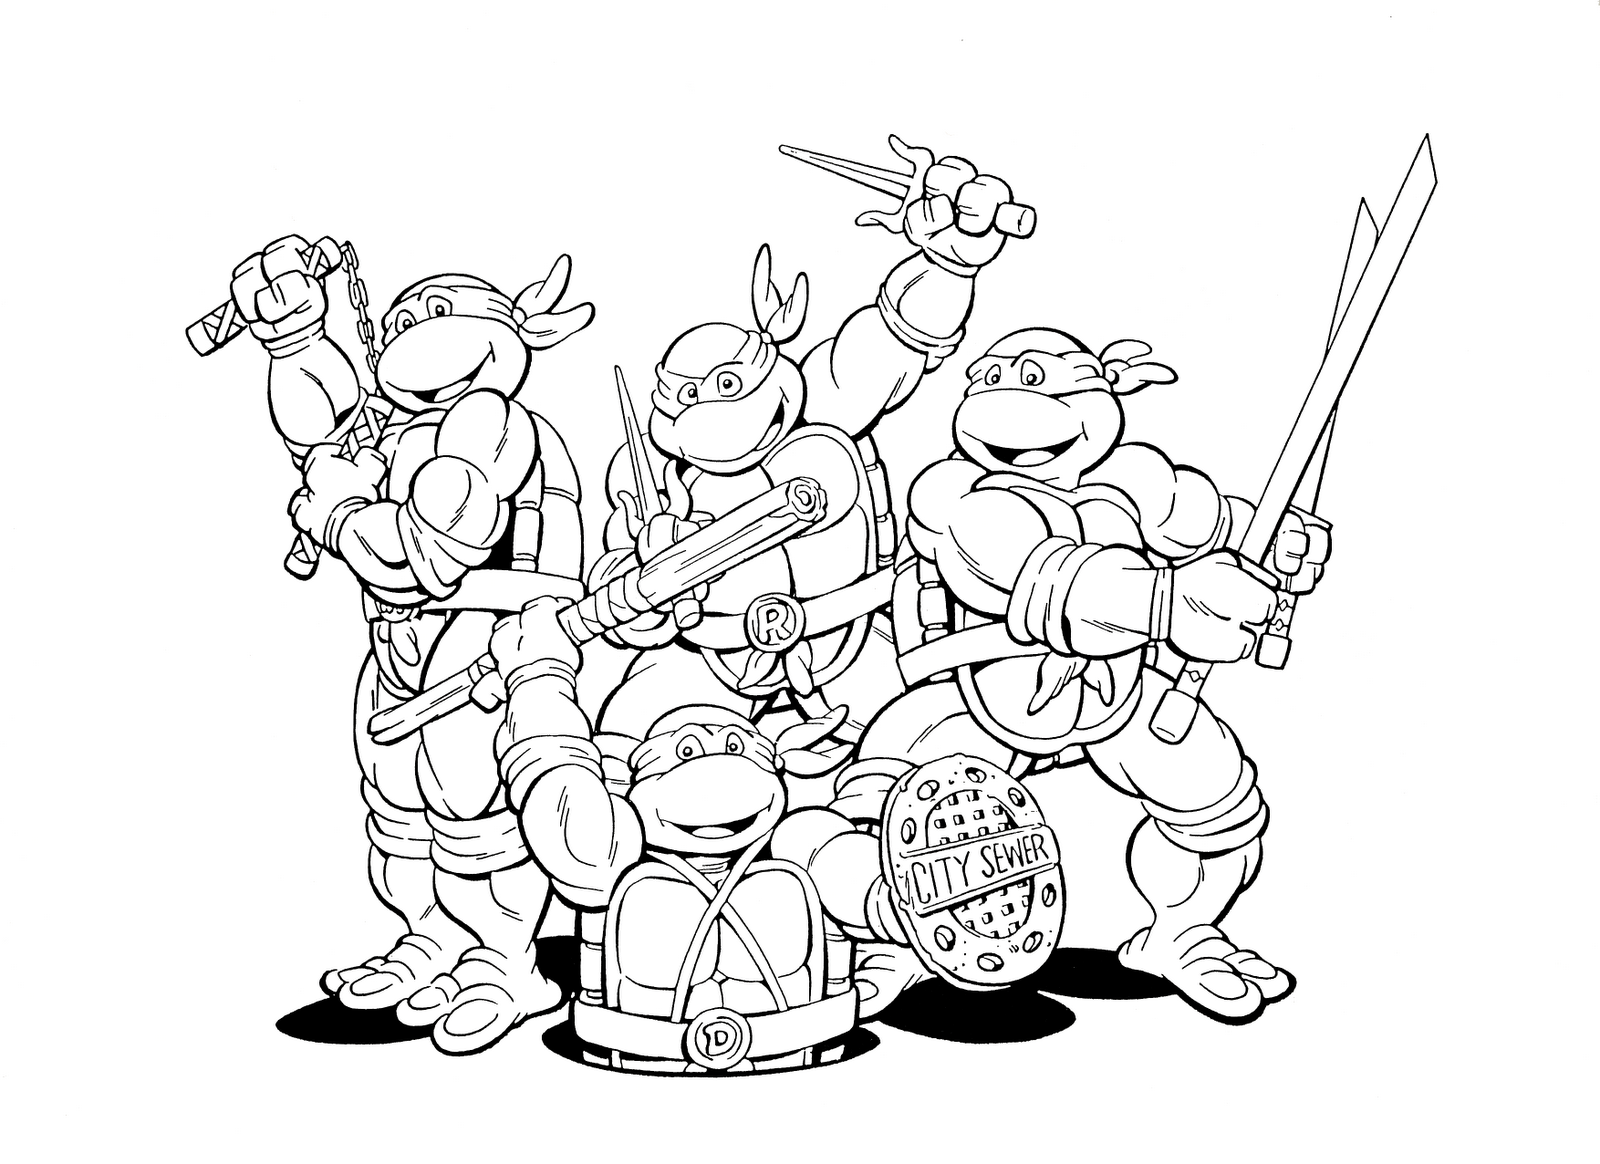 Mutant Ninja Turtles Coloring Pages Color Pages In 2018